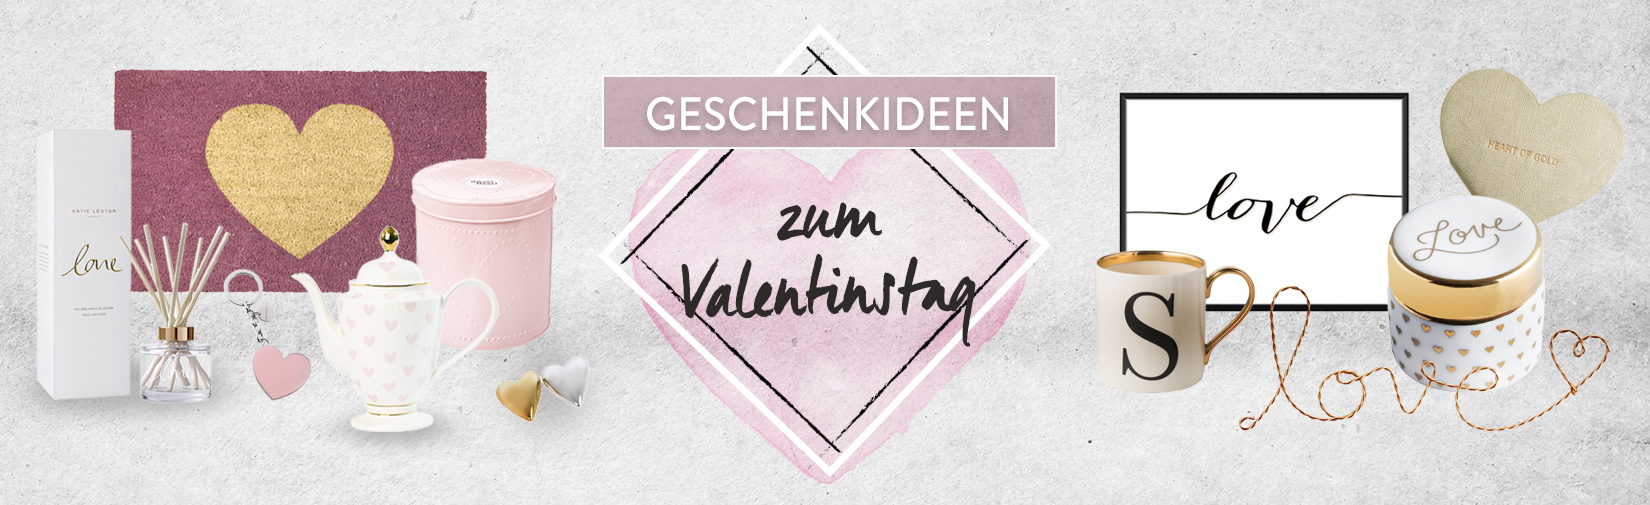 Pinterest_LP_desktop_Valentinstag